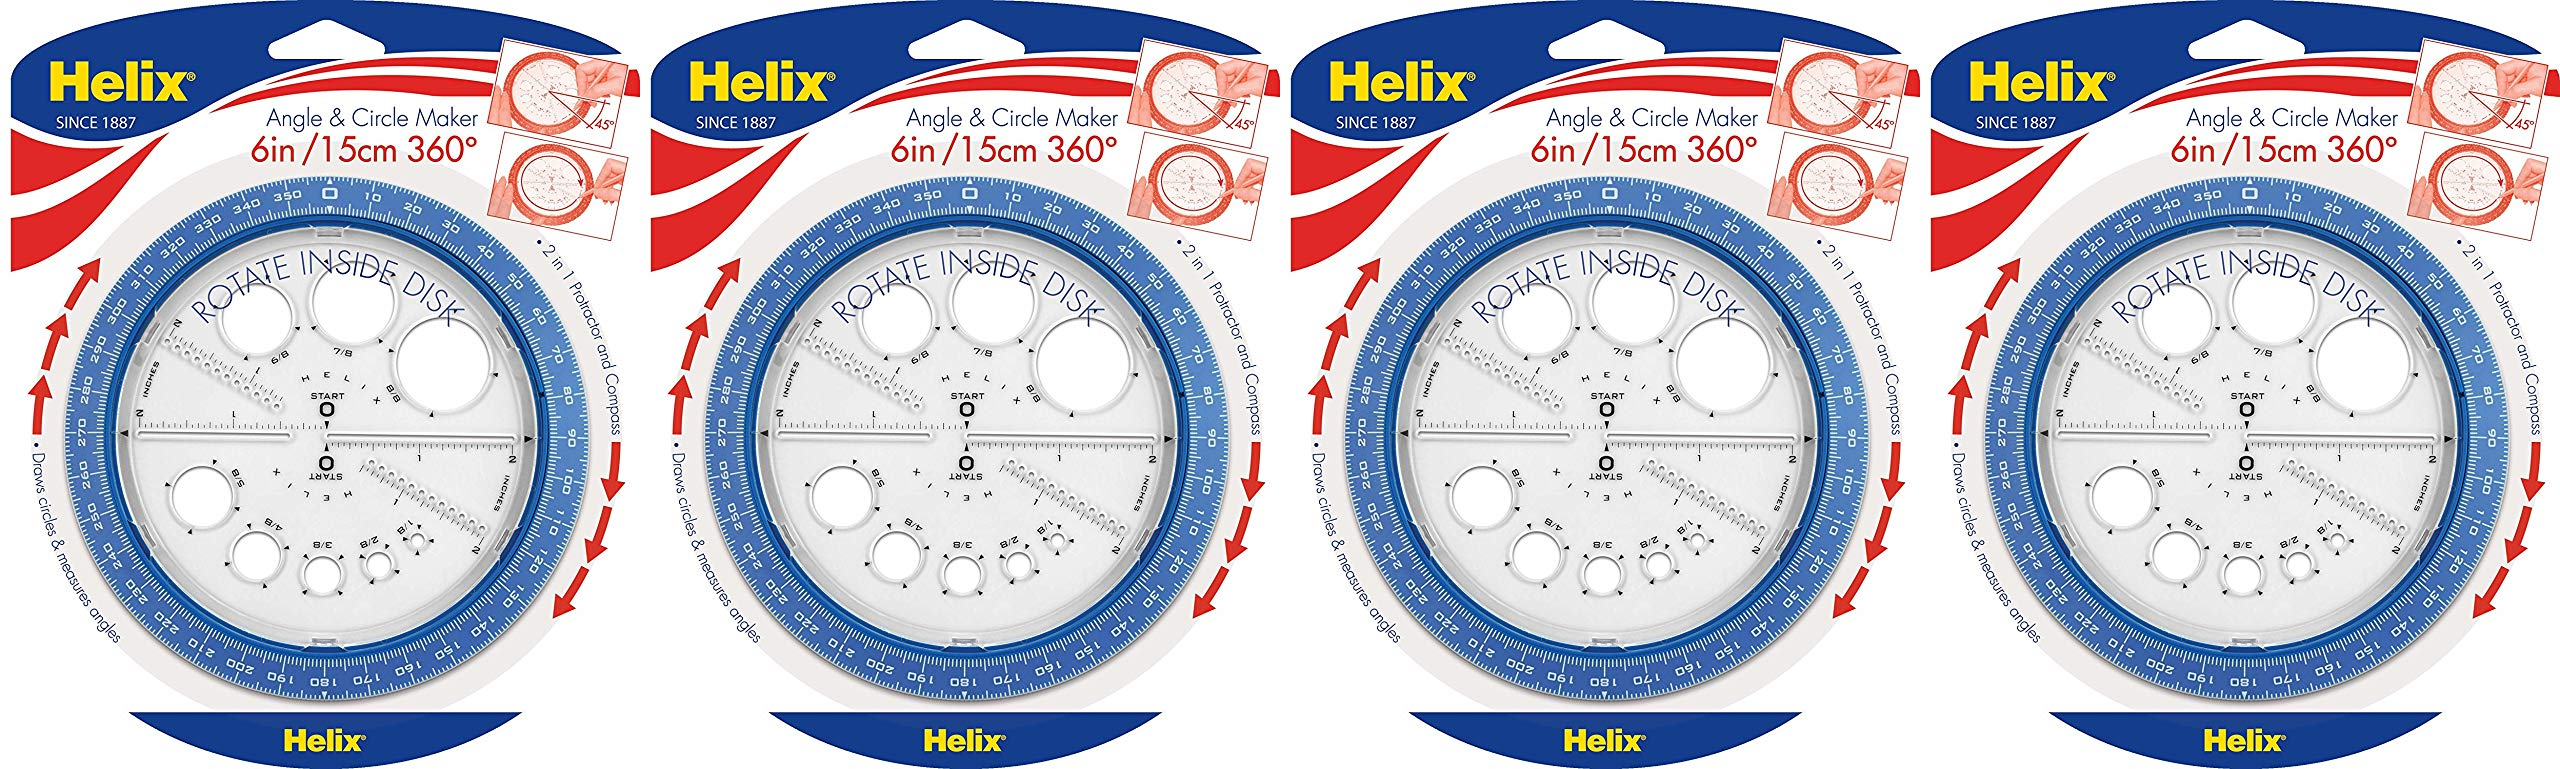 Helix 360° Angle and Circle Maker, Assorted Colors, 4 Pack by Maped Helix USA (Image #1)